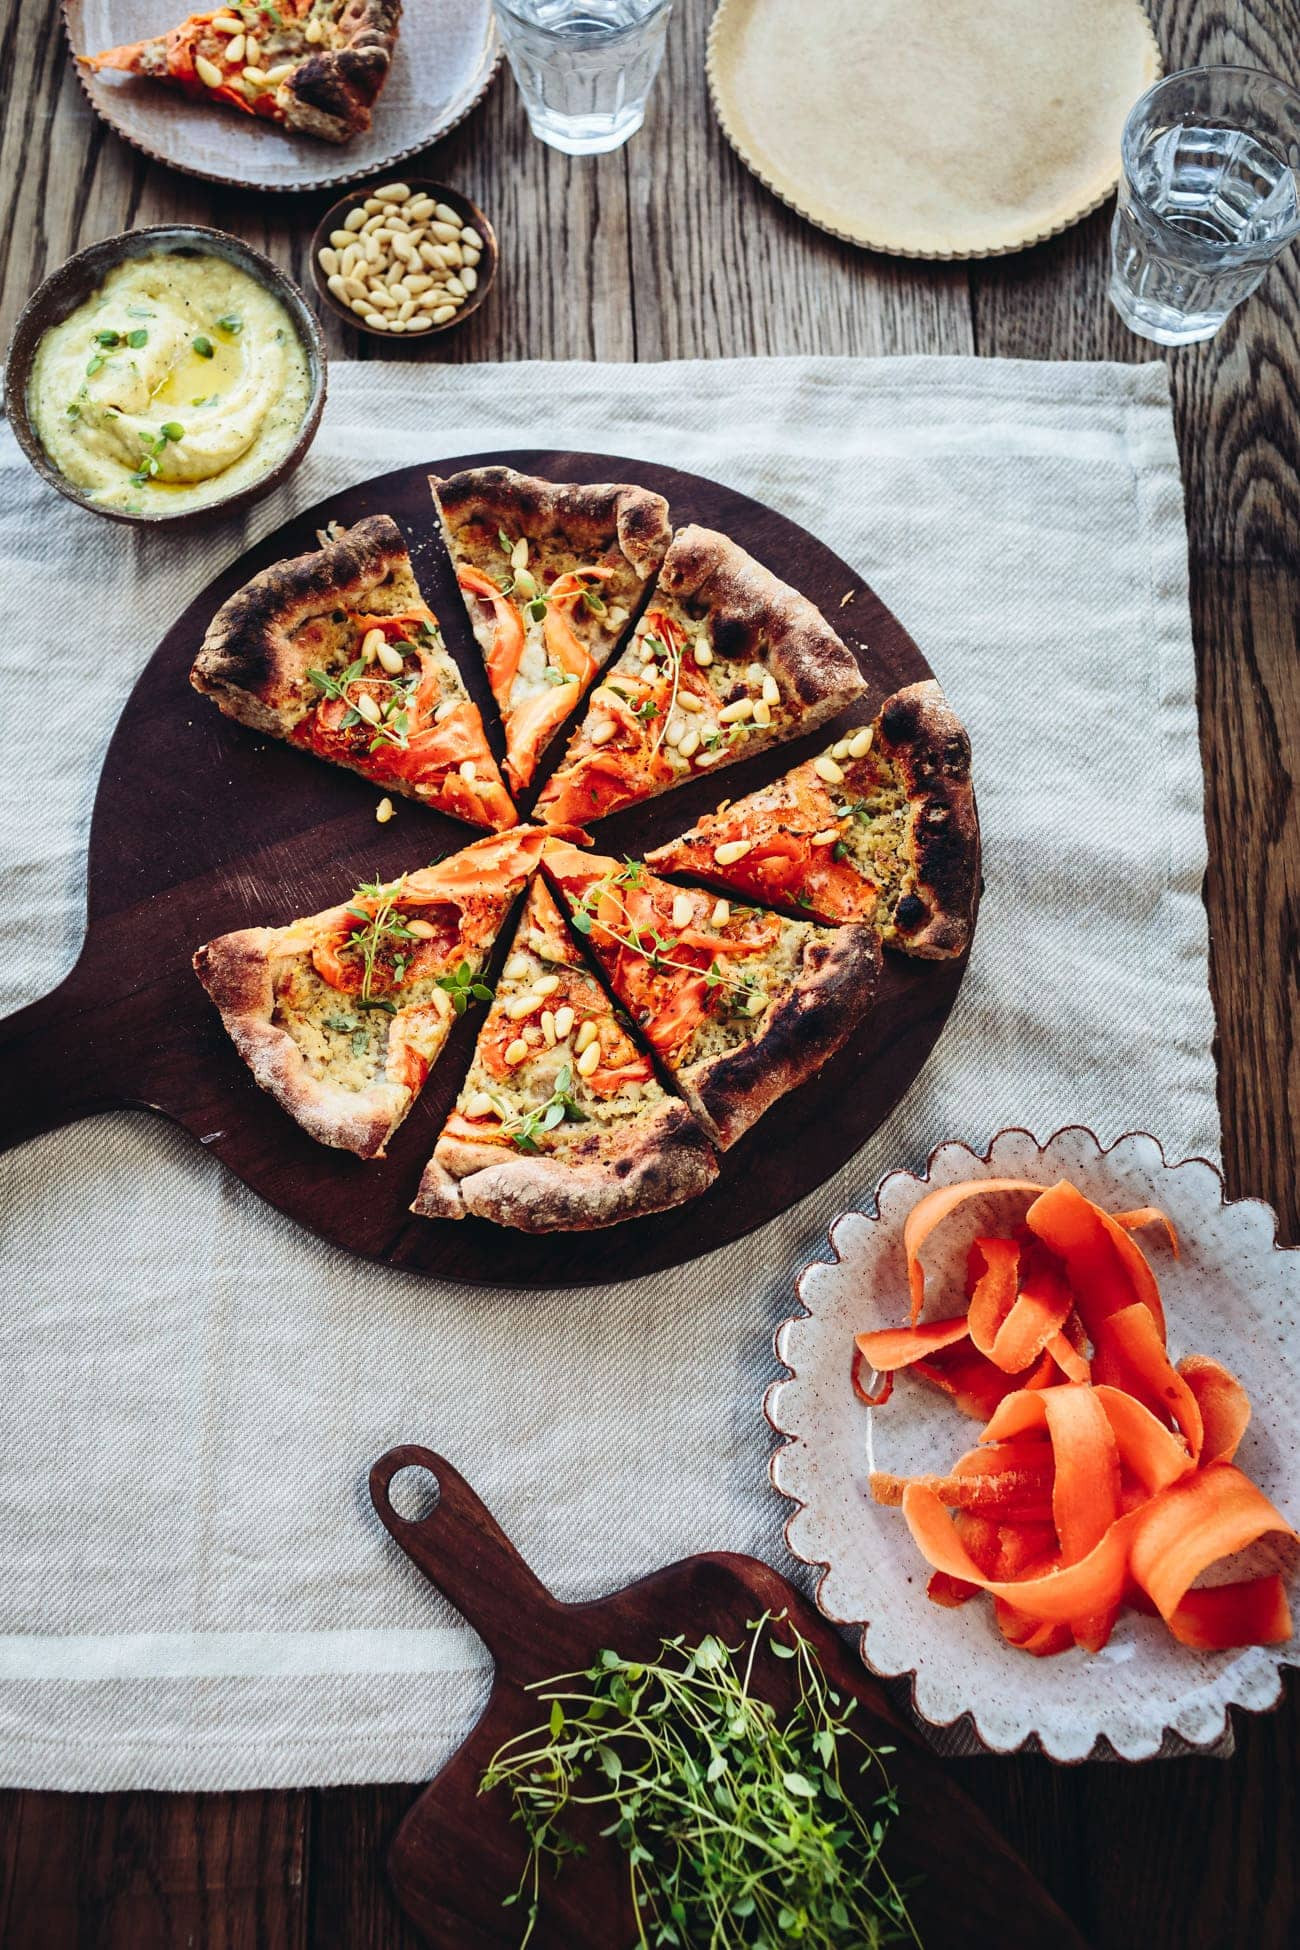 Creamy Garlic Pizza Sauce  Carrot Pine Nut & Parmesan Skillet Pizza with Creamy